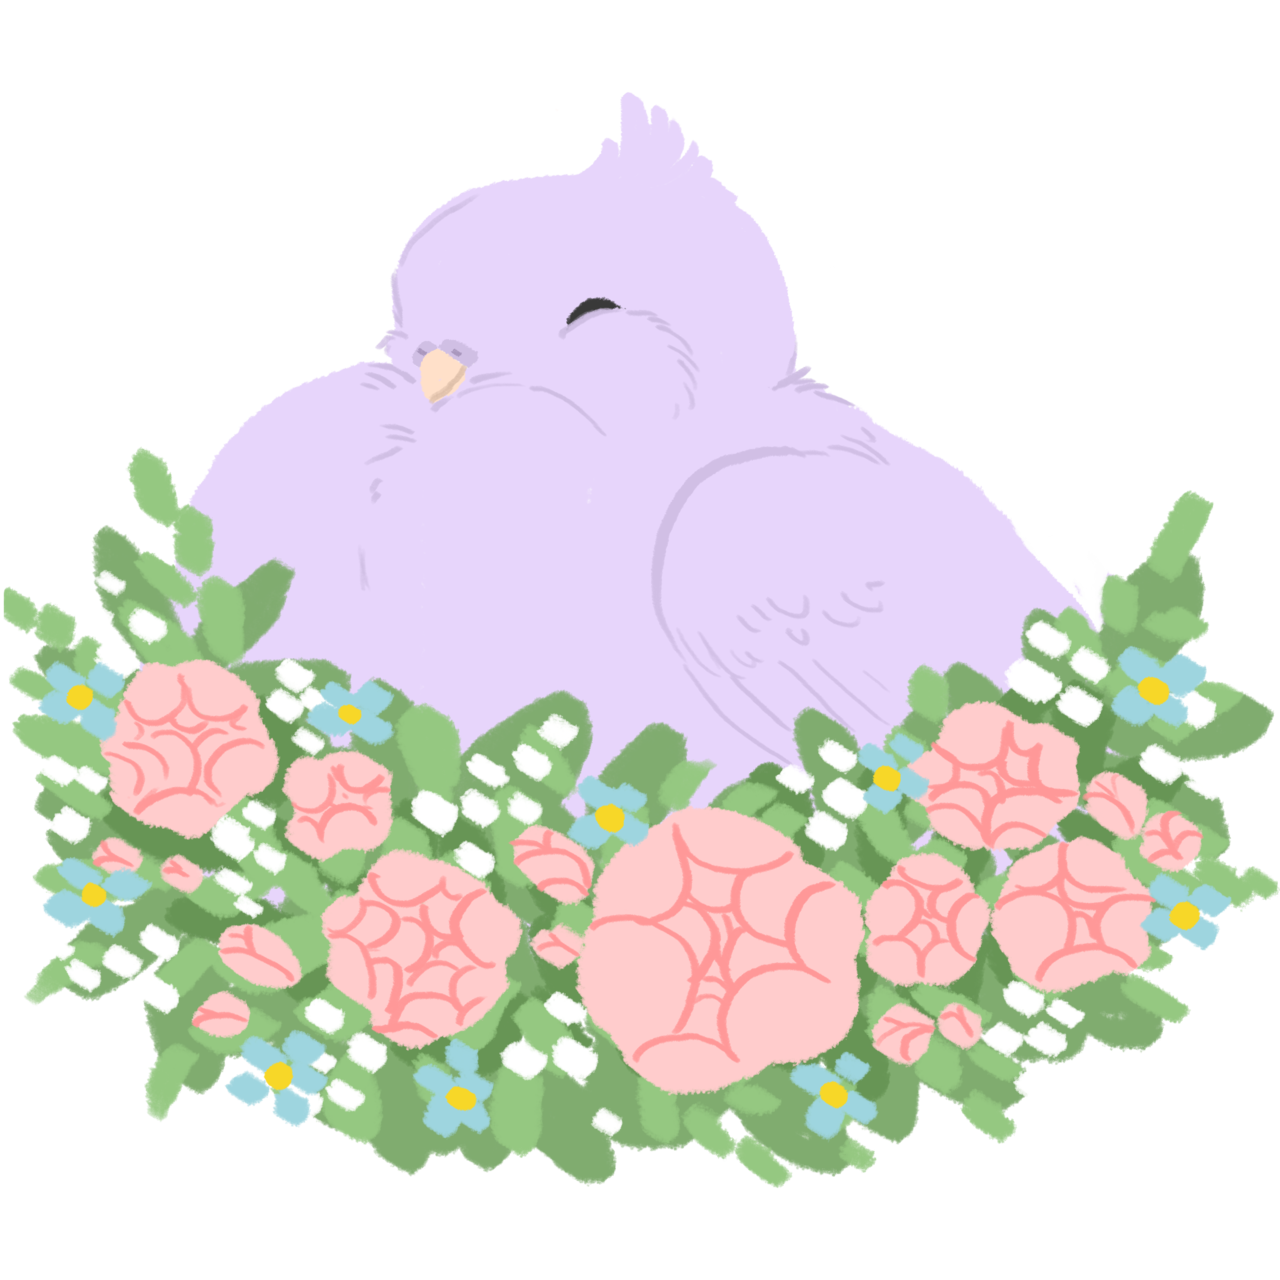 Pudgy pigeons lizzywhimsy have. Nest clipart pigeon nest